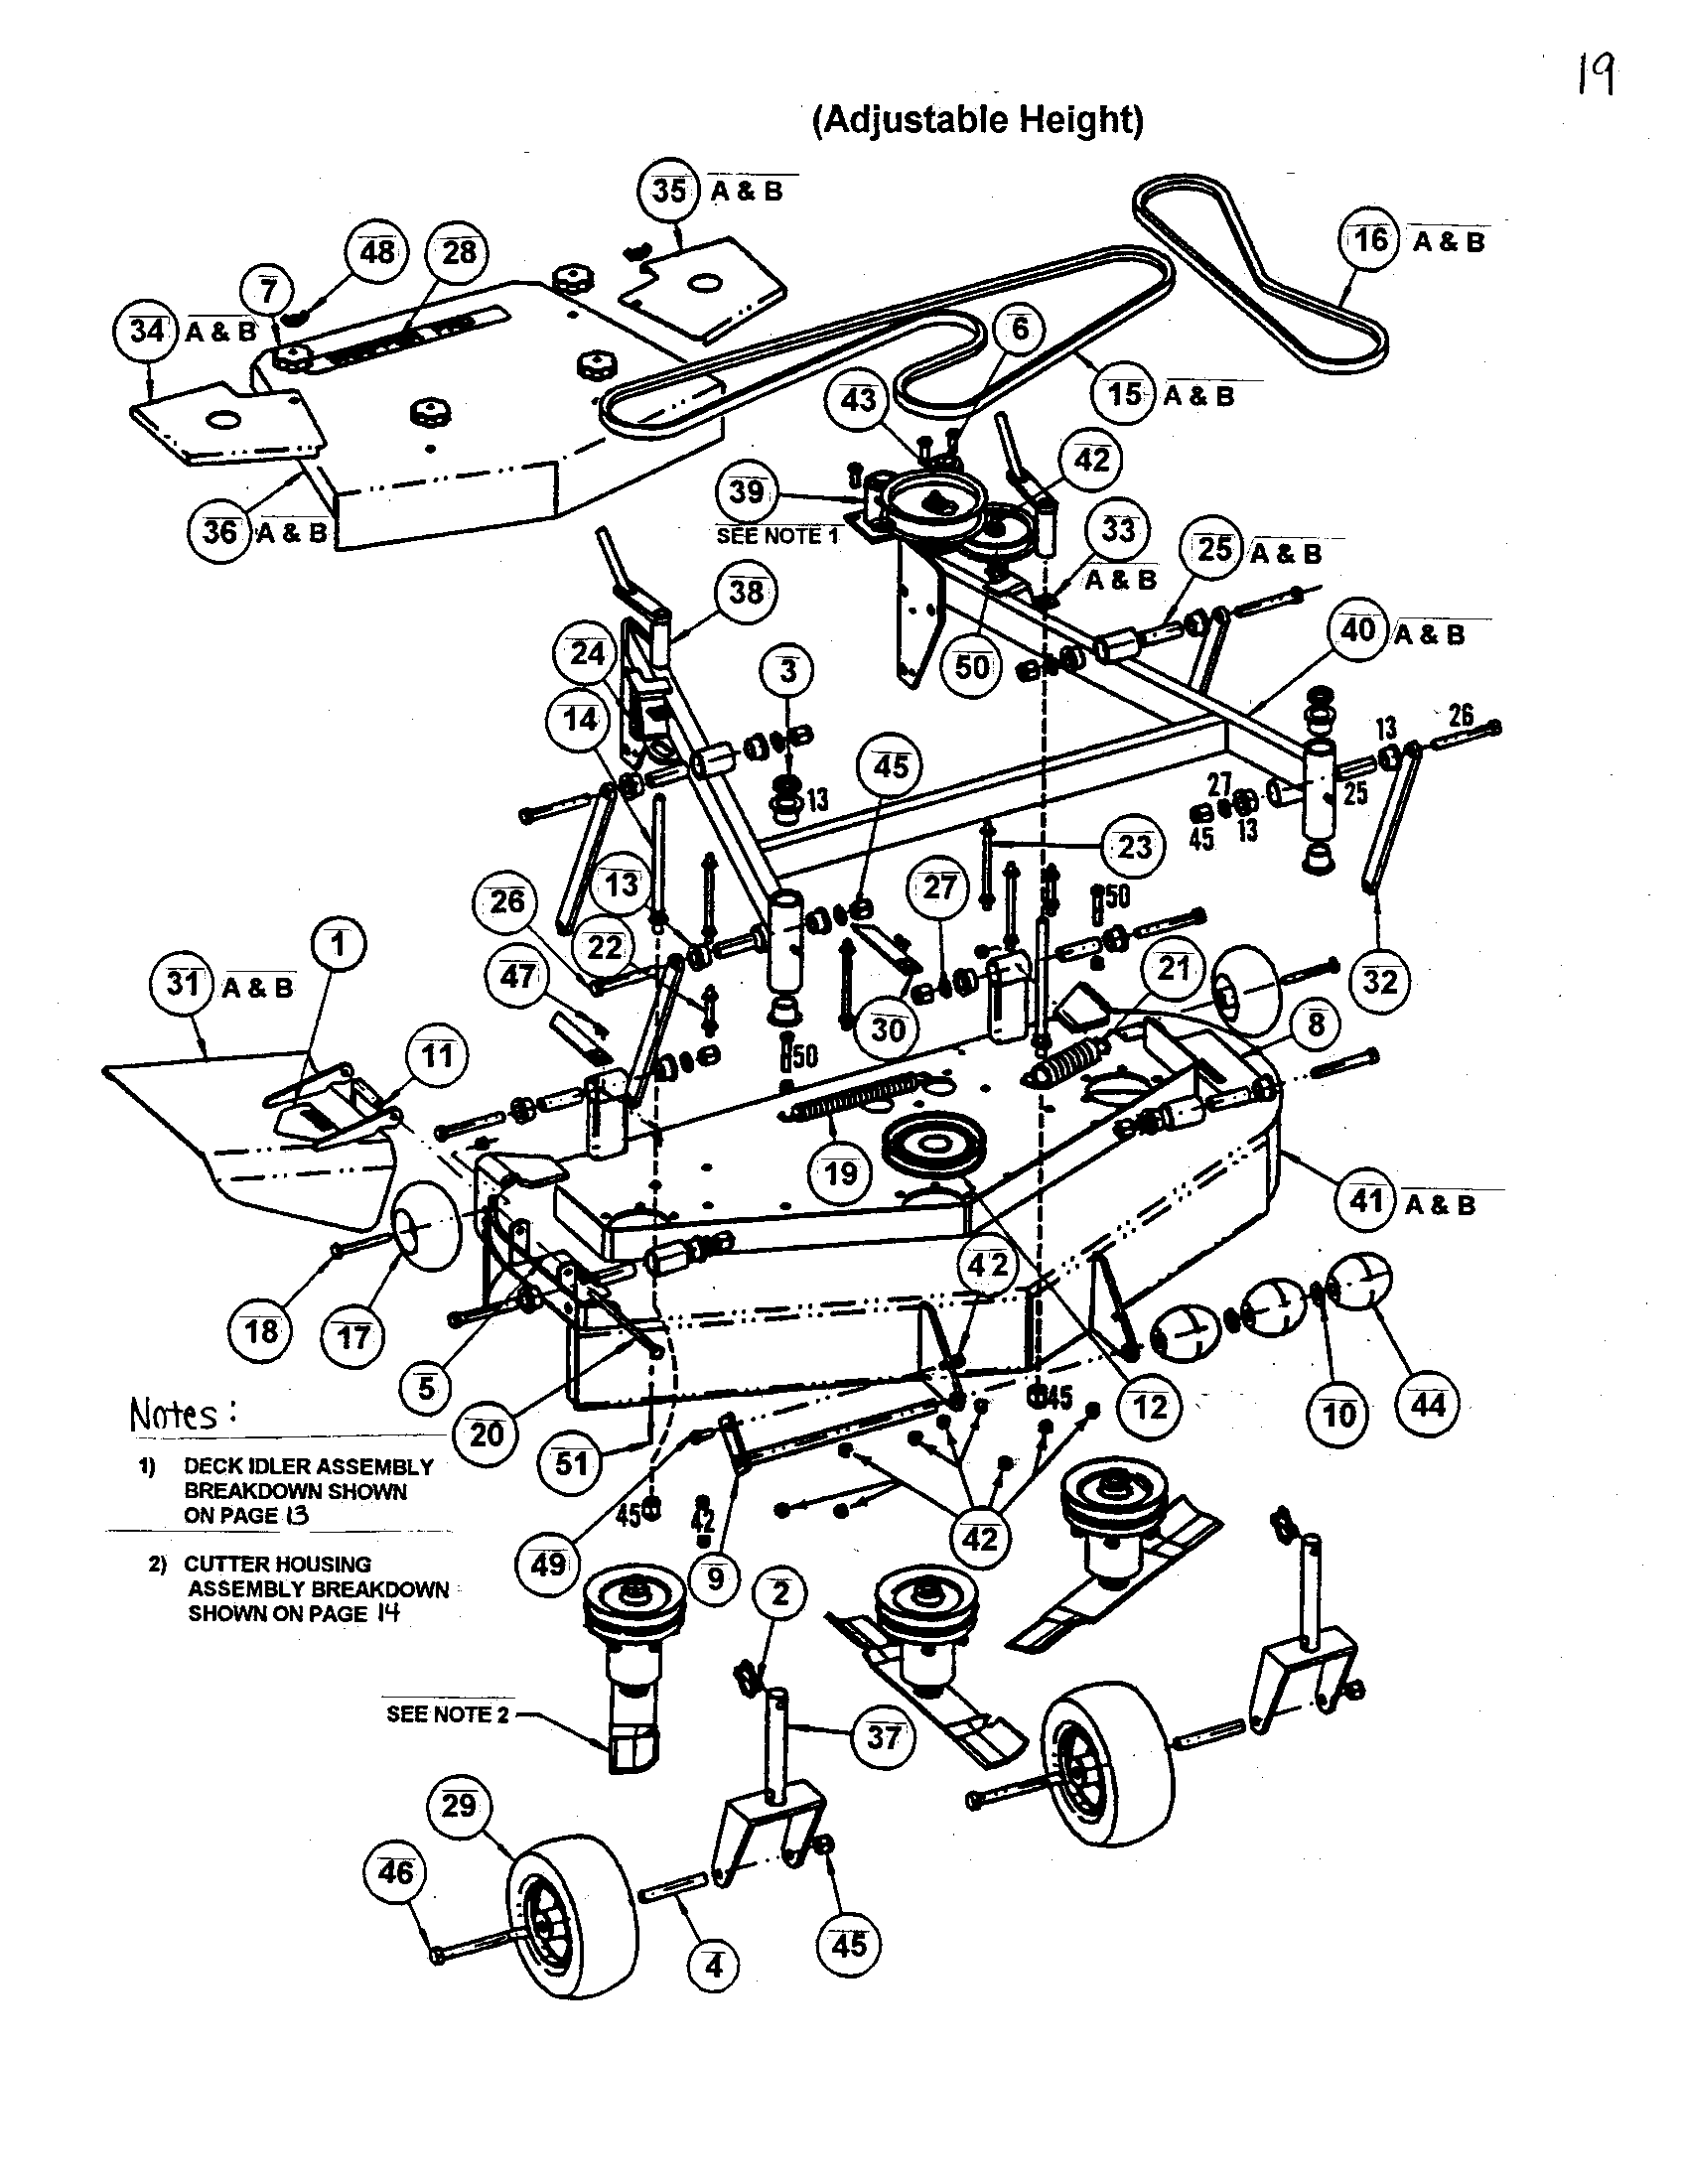 snapper mower electrical diagram vw 5248  mower wiring diagram snapper lawn mower wheels snapper  mower wiring diagram snapper lawn mower